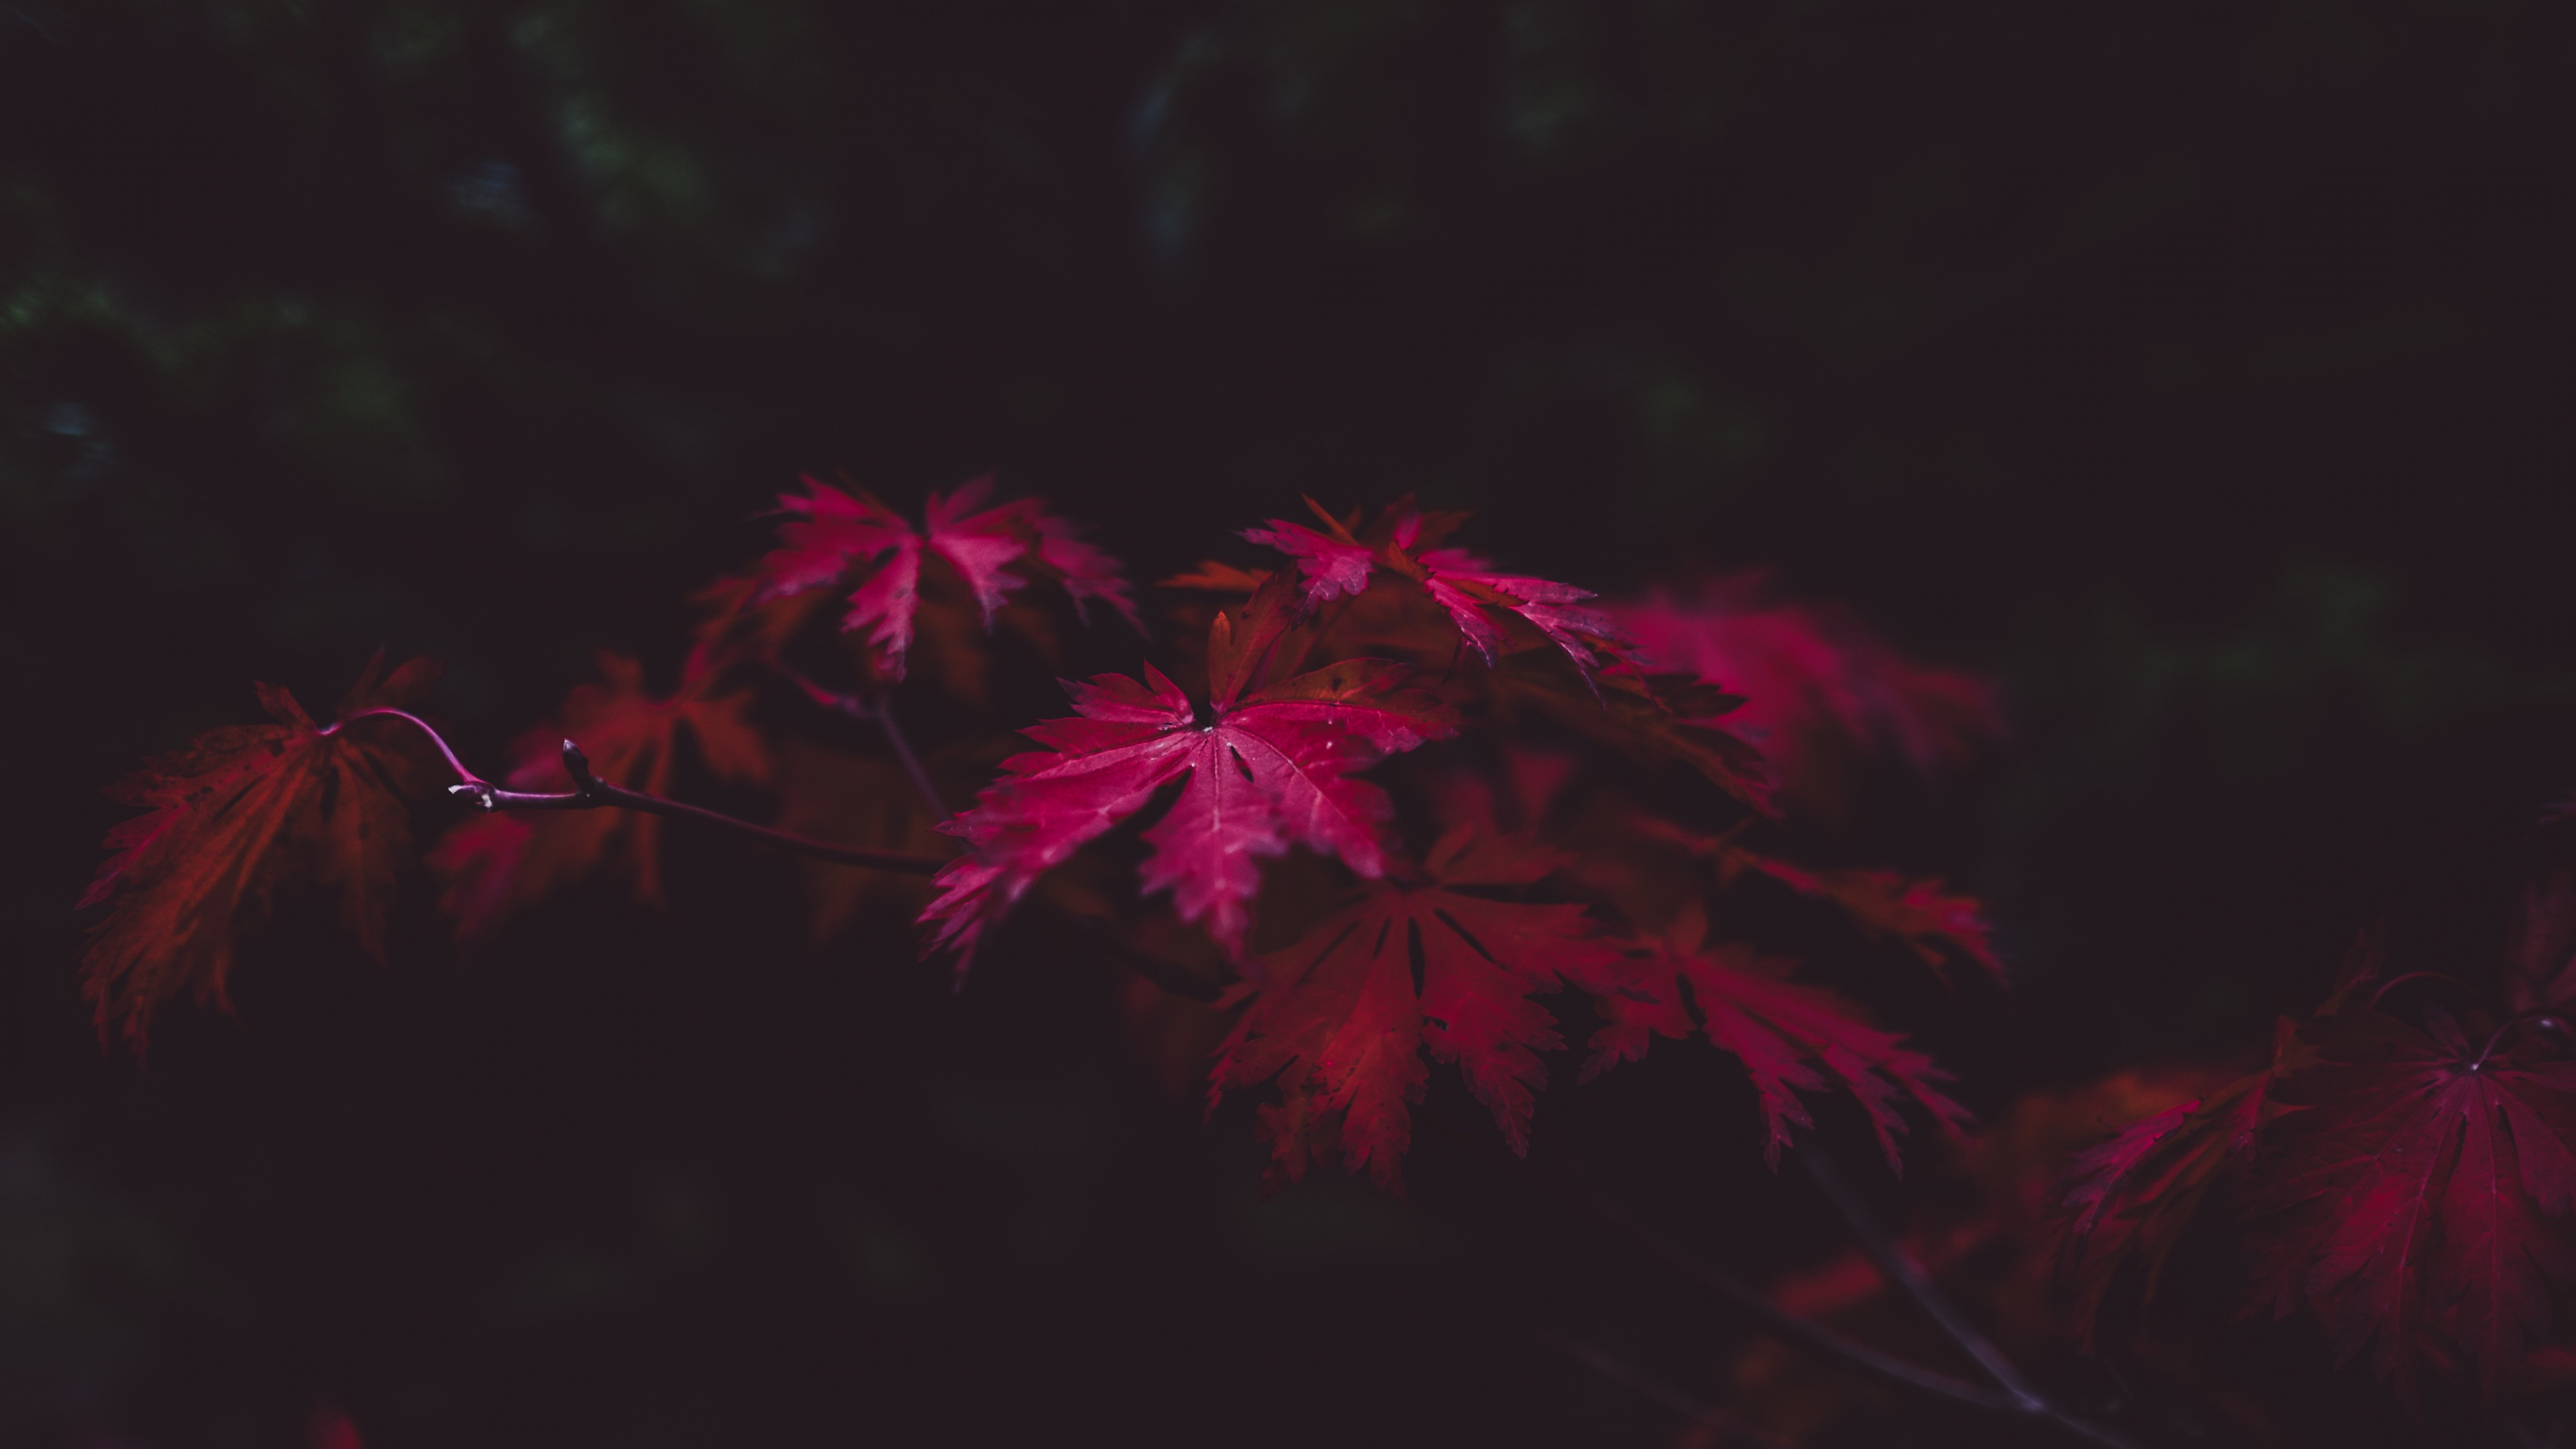 Red Leaves 4k Hd Nature 4k Wallpapers Images Backgrounds